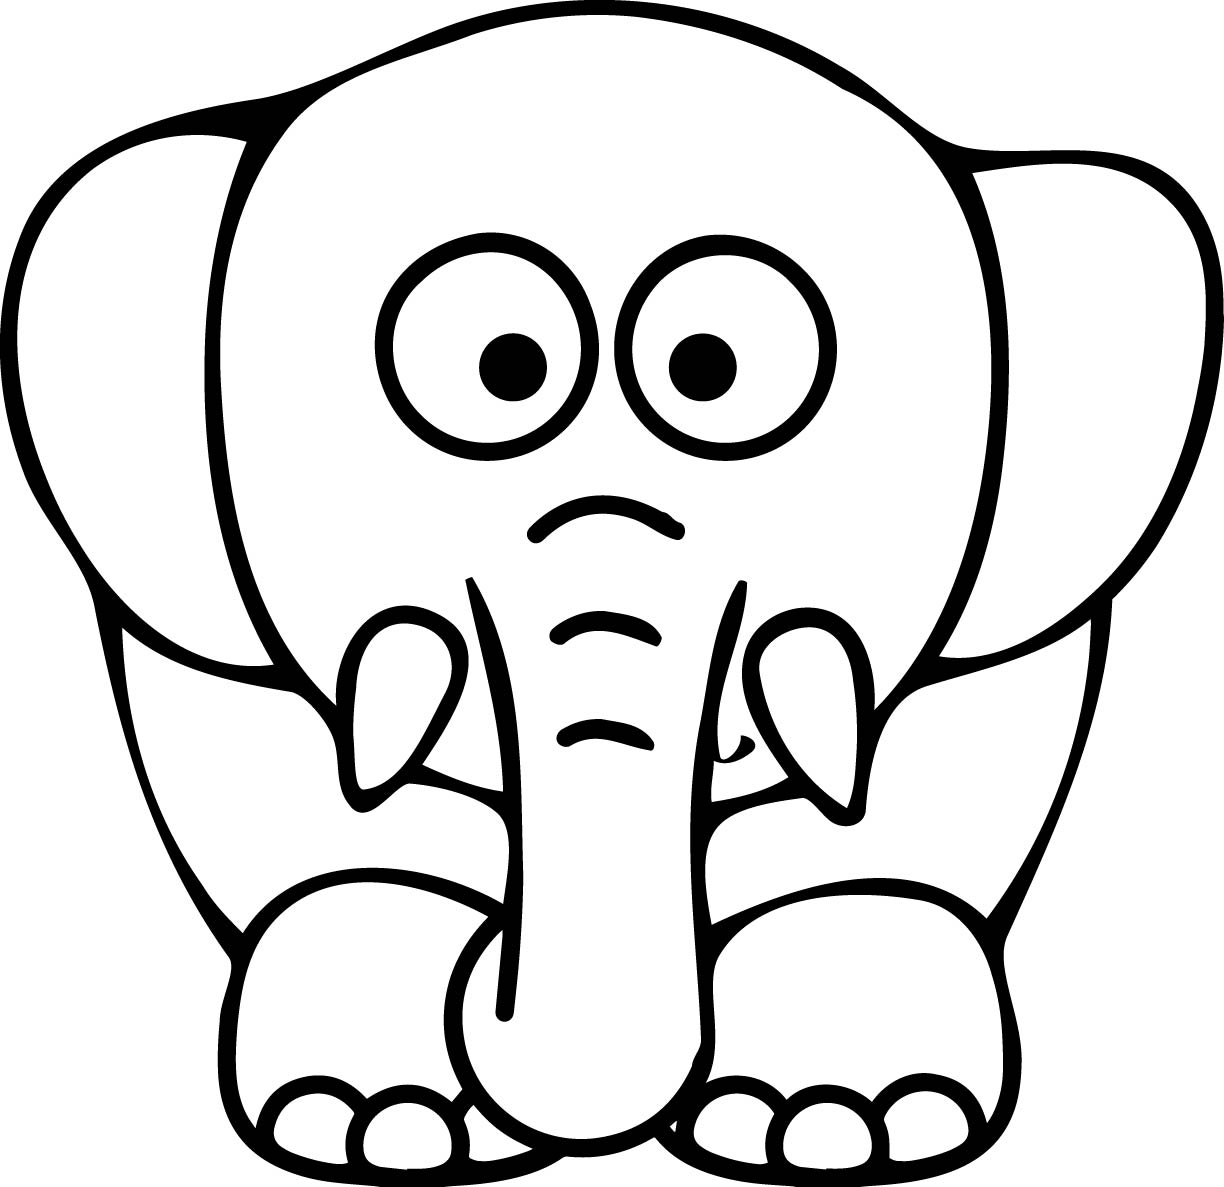 coloring book elephant images black beauty 18 elephant coloring pages free printables elephant coloring images book